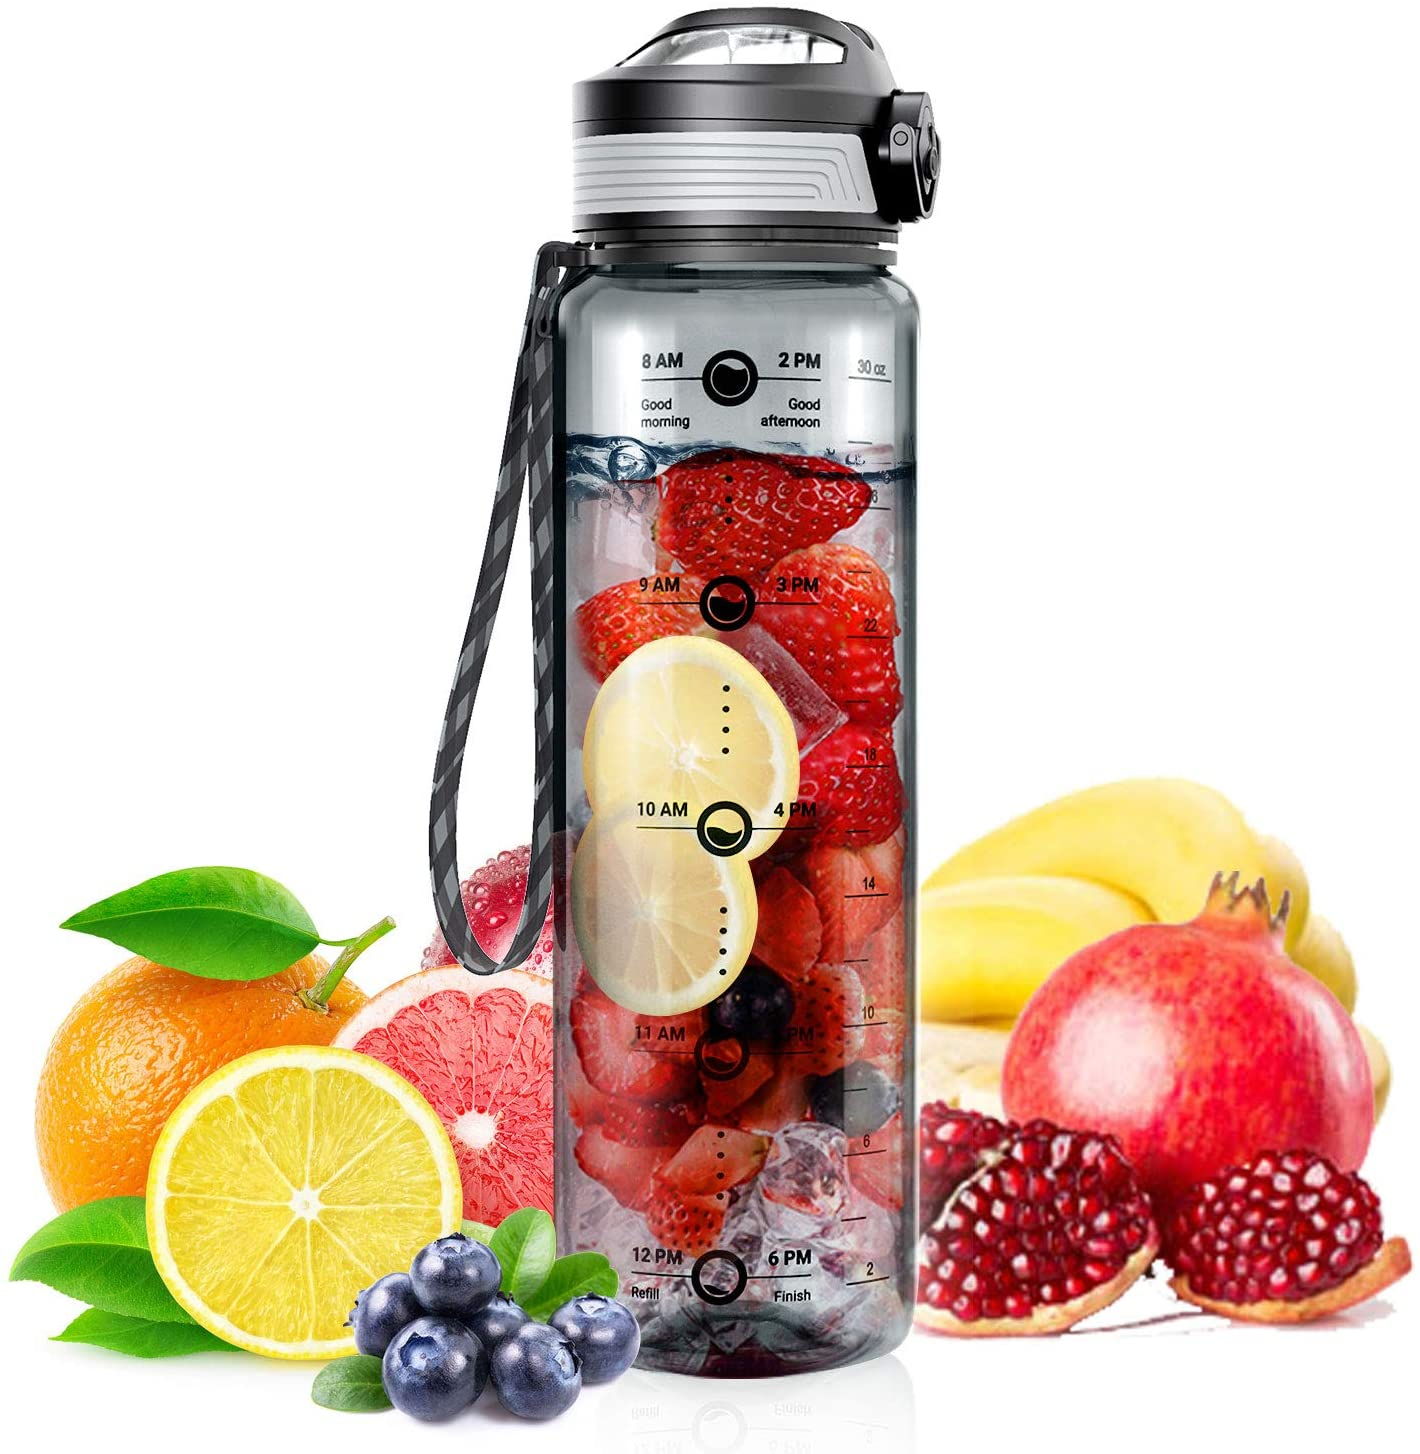 STOON Water Bottle with Time Marker, 32oz BPA Free Sports Fruit Infuser Water Bottle - Fast Flow, Removable Strainer, Leak-Proof -1L Reusable Drinking Bottle for Office, Gym, Travel, Fitness and More